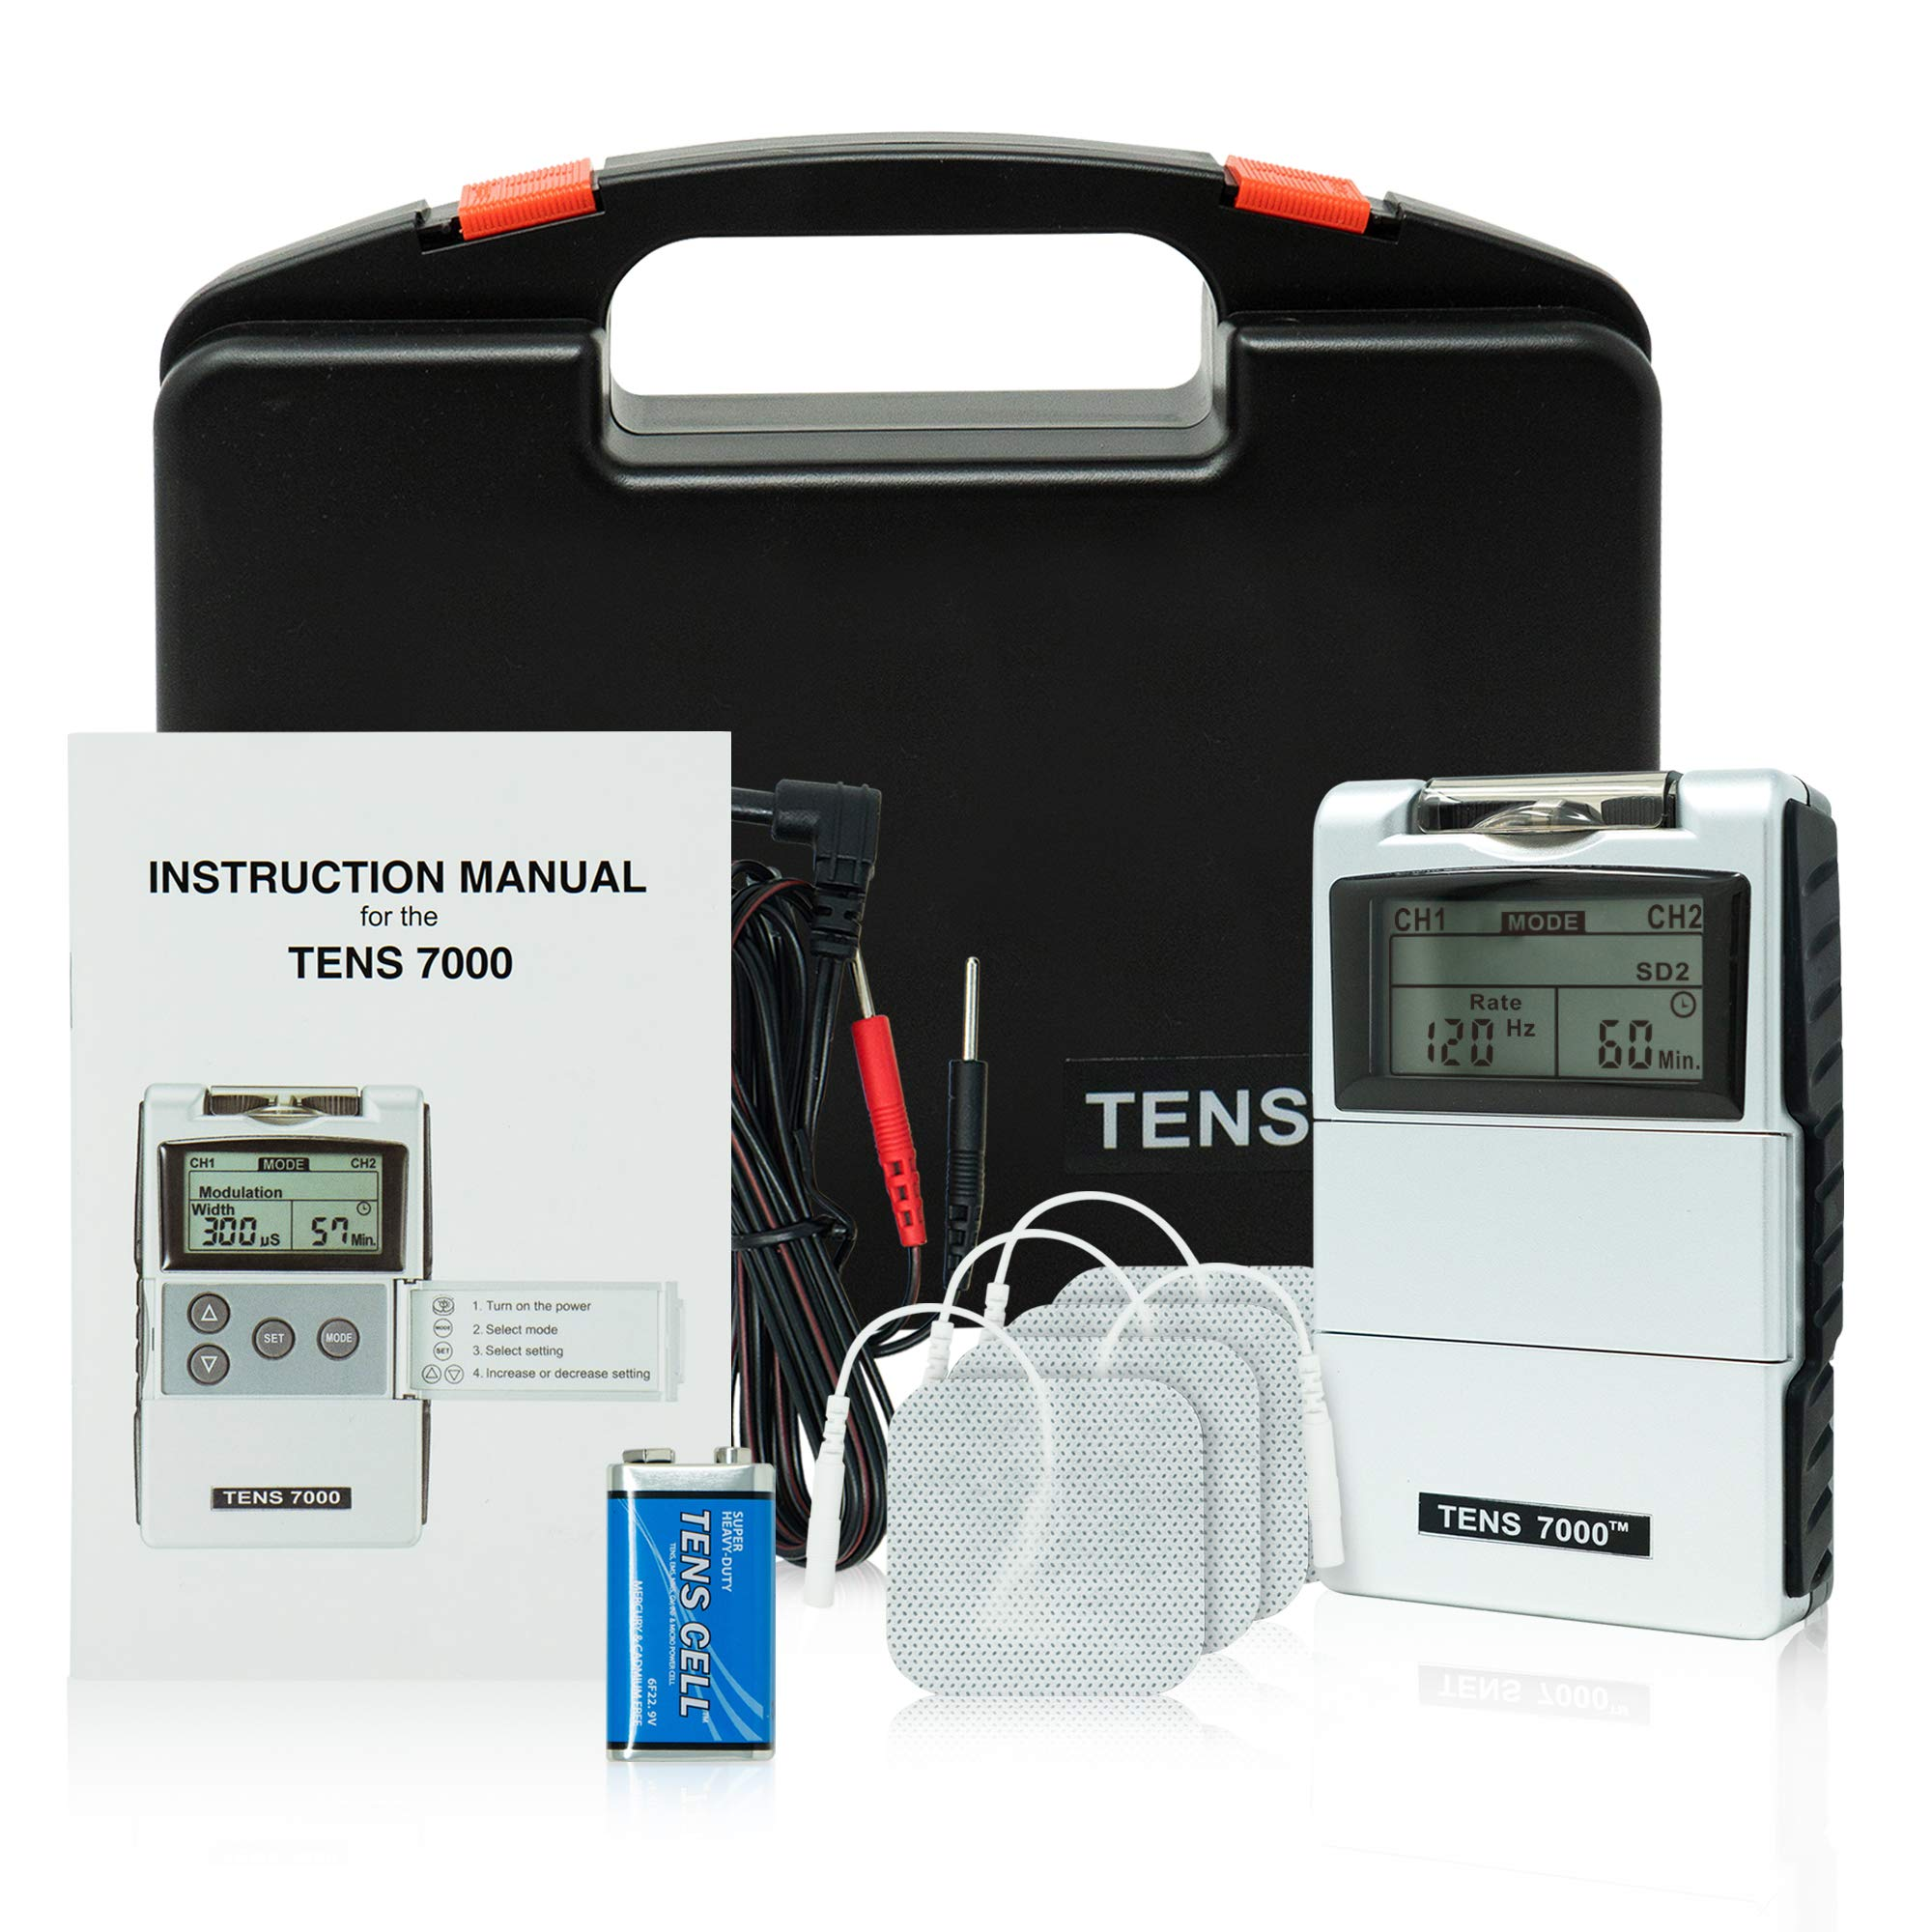 TENS 7000 2nd Edition Digital TENS Unit with Accessories by TENS 7000